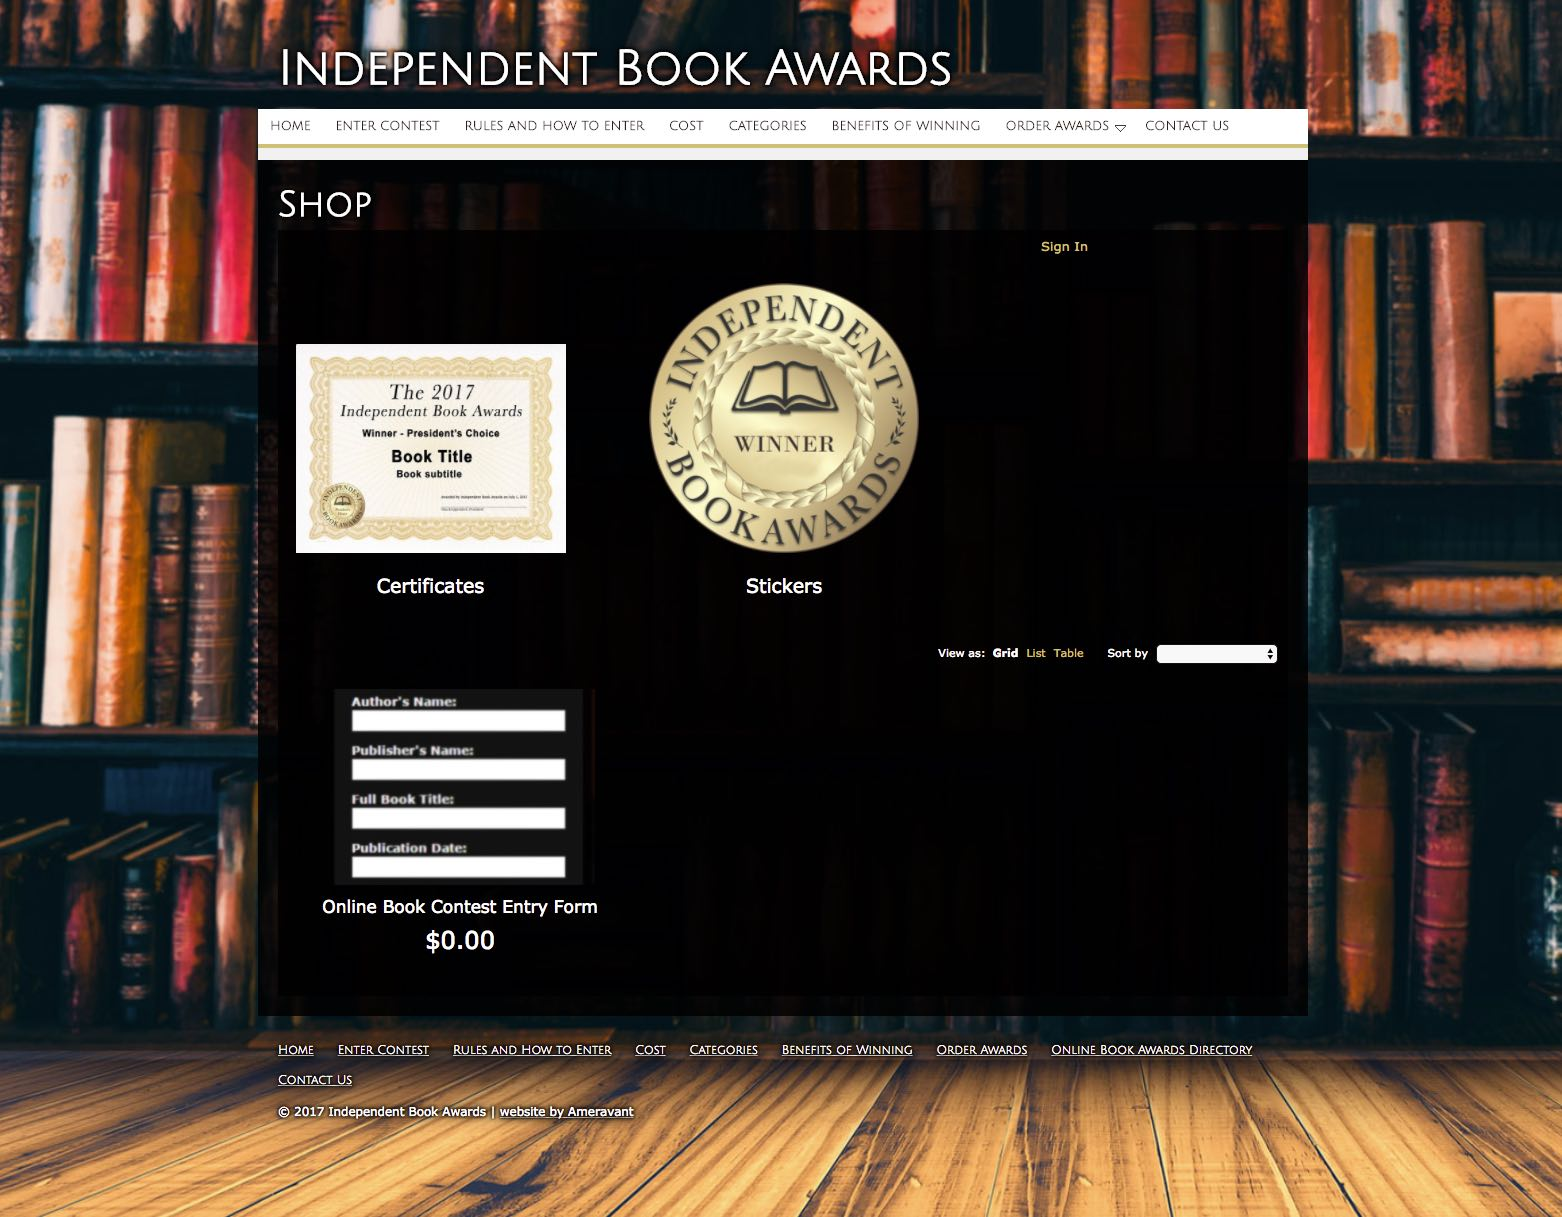 How to Enter Independent Book Awards Shop